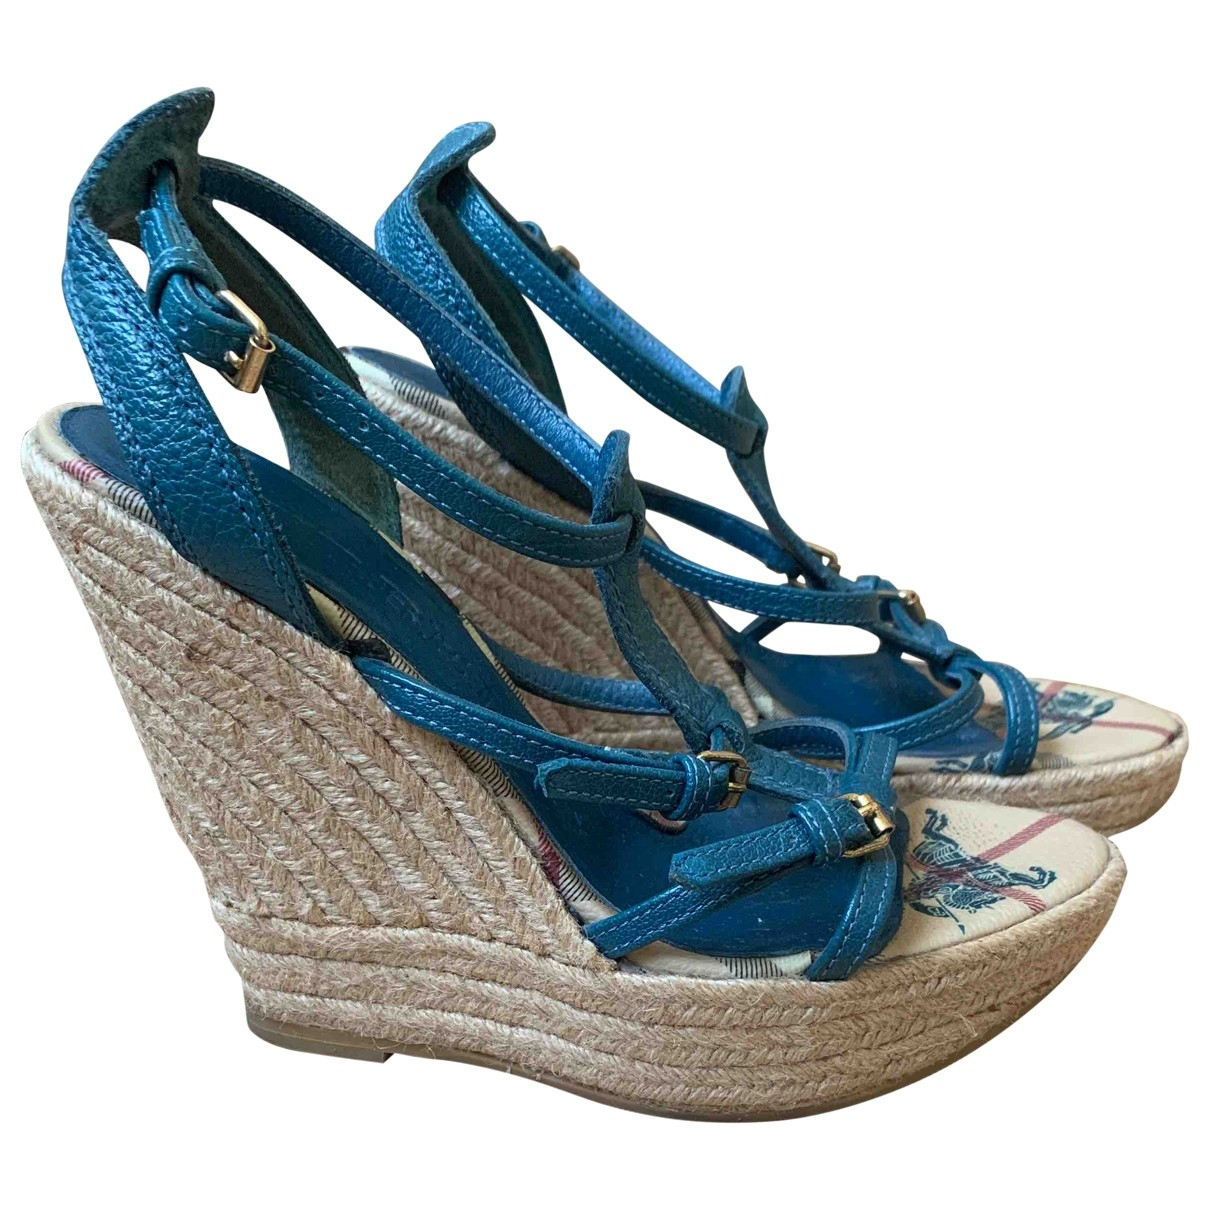 Burberry \N Blue Leather Sandals for Women 36 EU